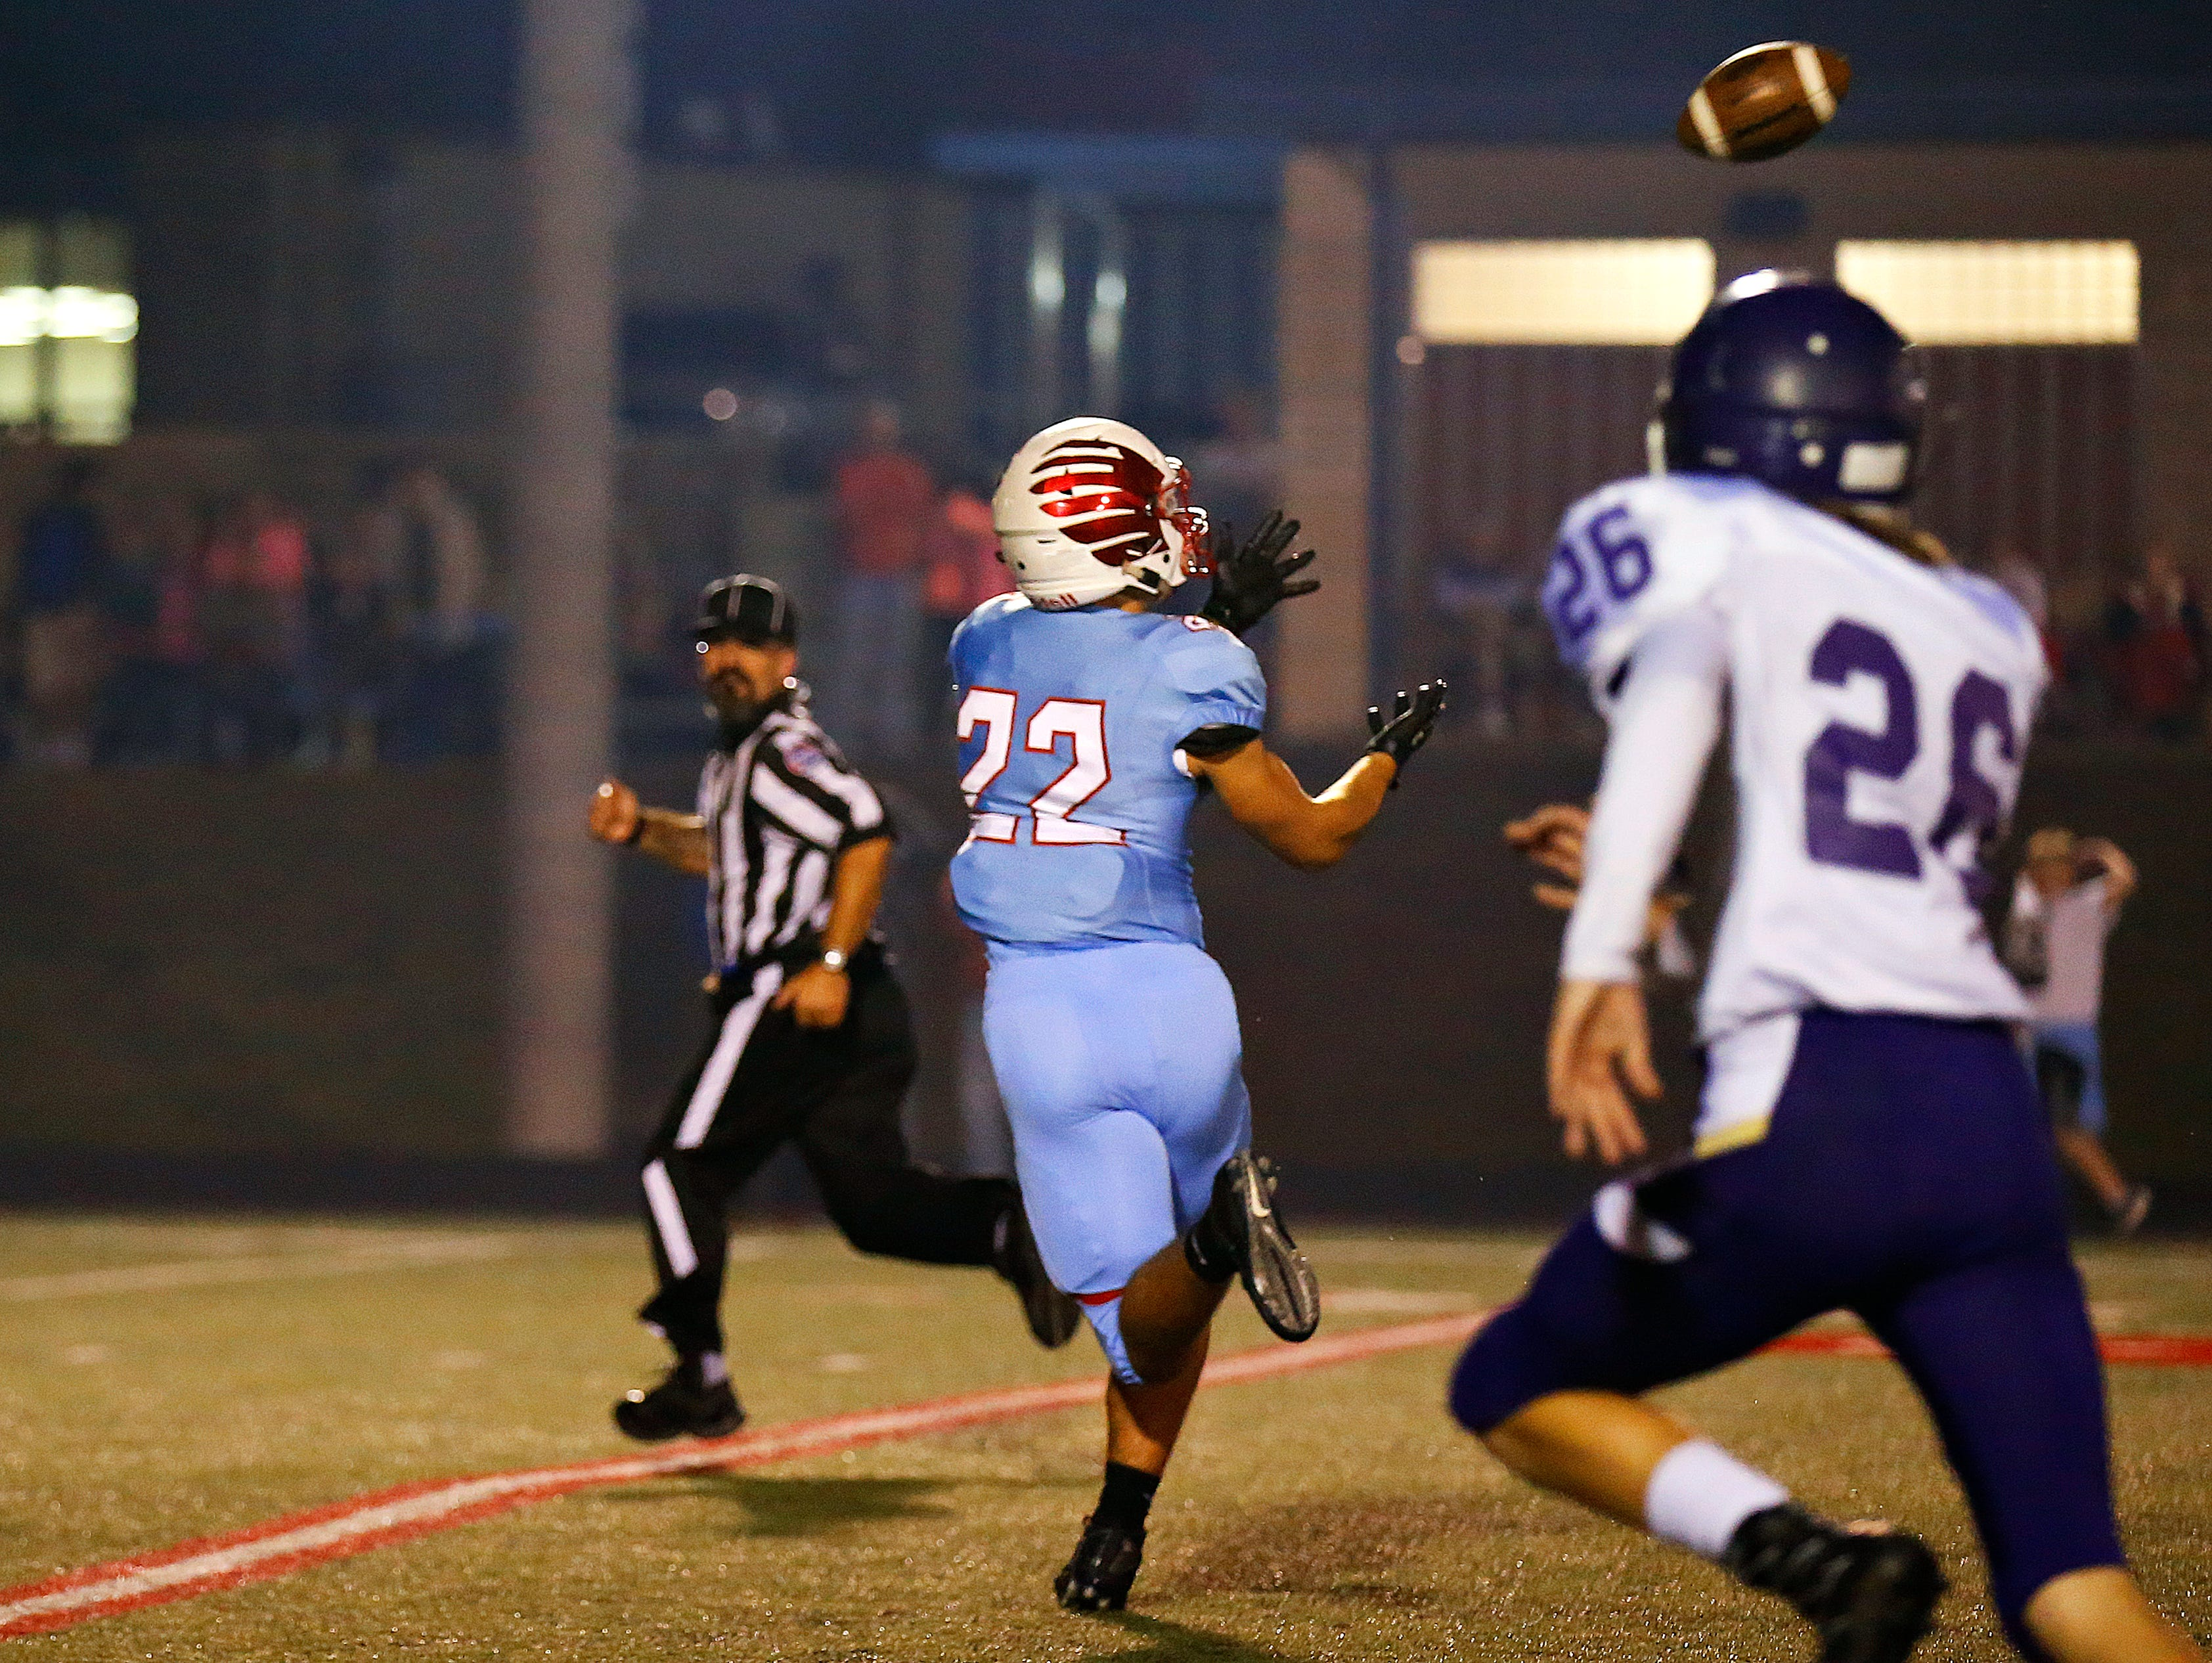 Glendale High School wide receiver Luke Montgomery (22) catches a long touchdown pass by quarterback Alex Houston (not pictured) during first quarter action of the game between Glendale High School and Camdenton High School at Lowe Stadium in Springfield, Mo. on Oct. 14, 2016. The Glendale Falcons won the game 63-35.